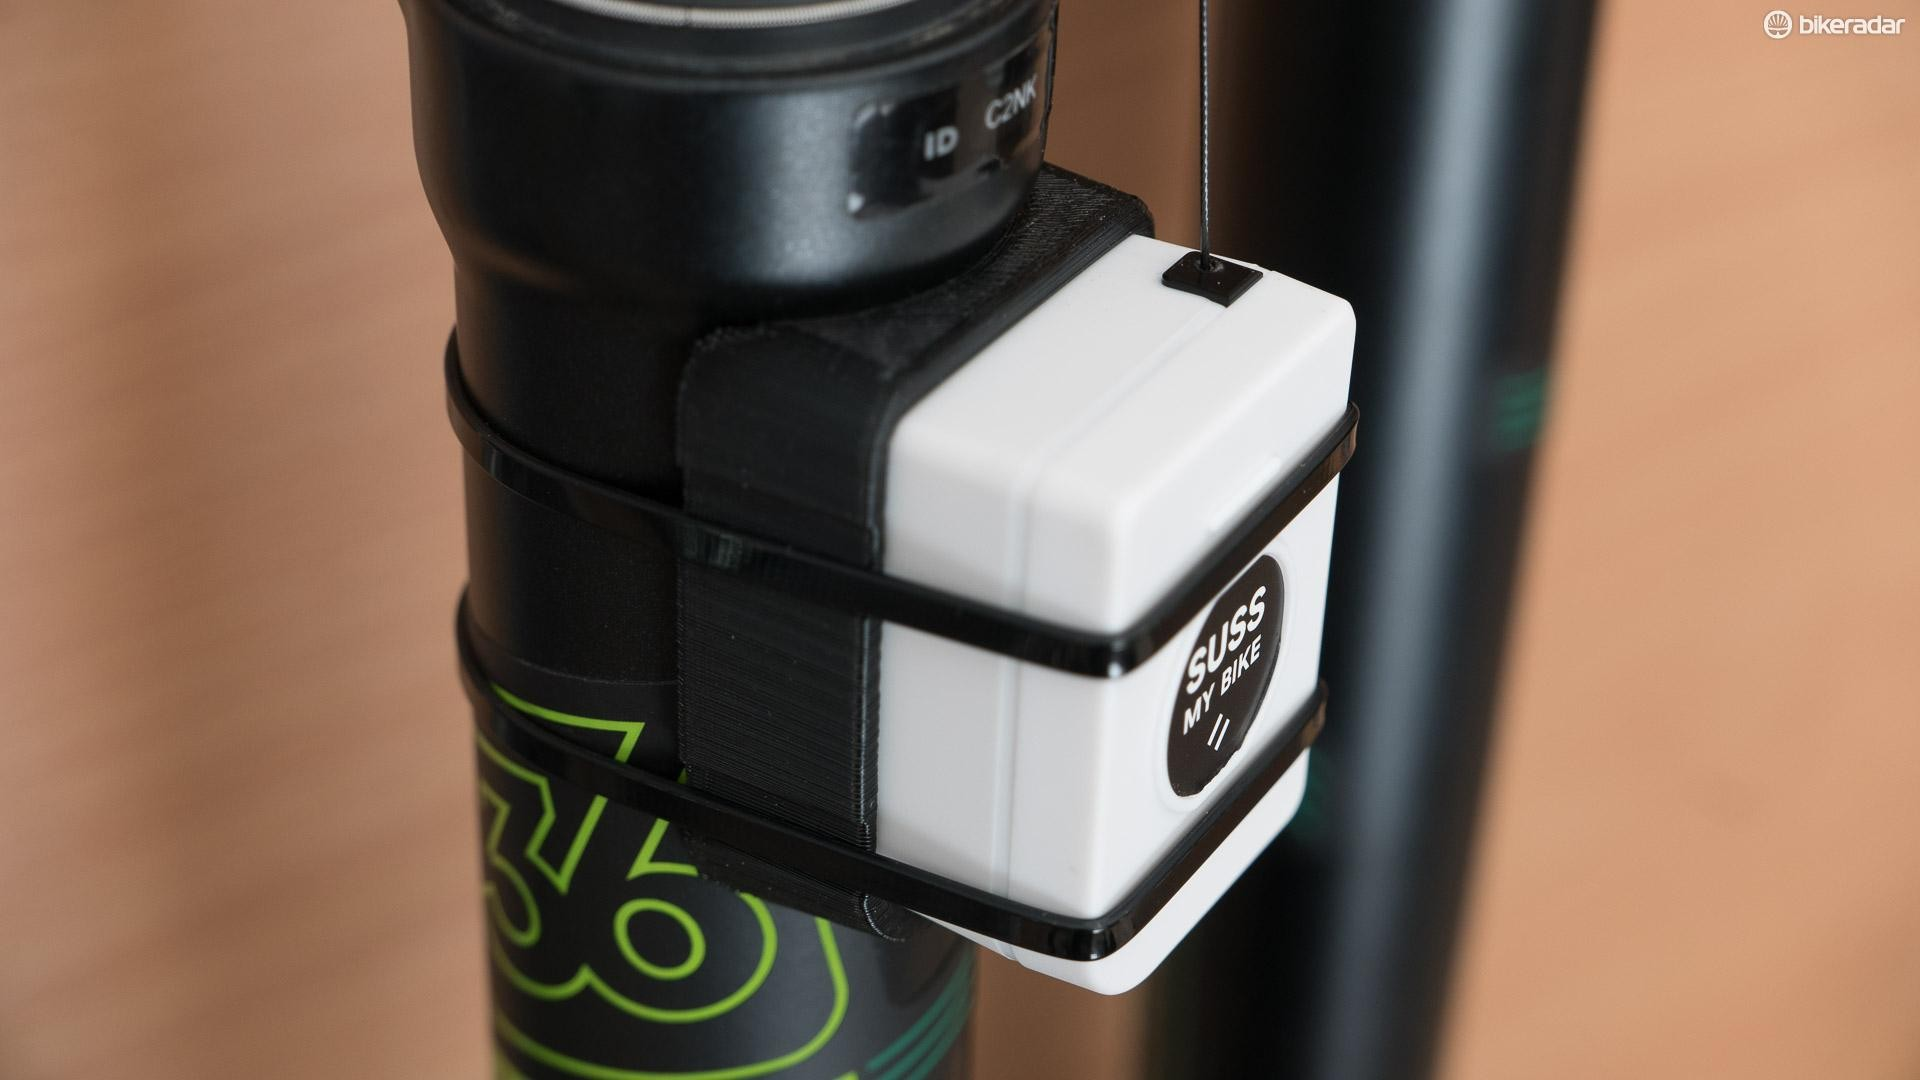 SussMyBike is a small Scottish company and its design works a bit like a retractable ski pass holder